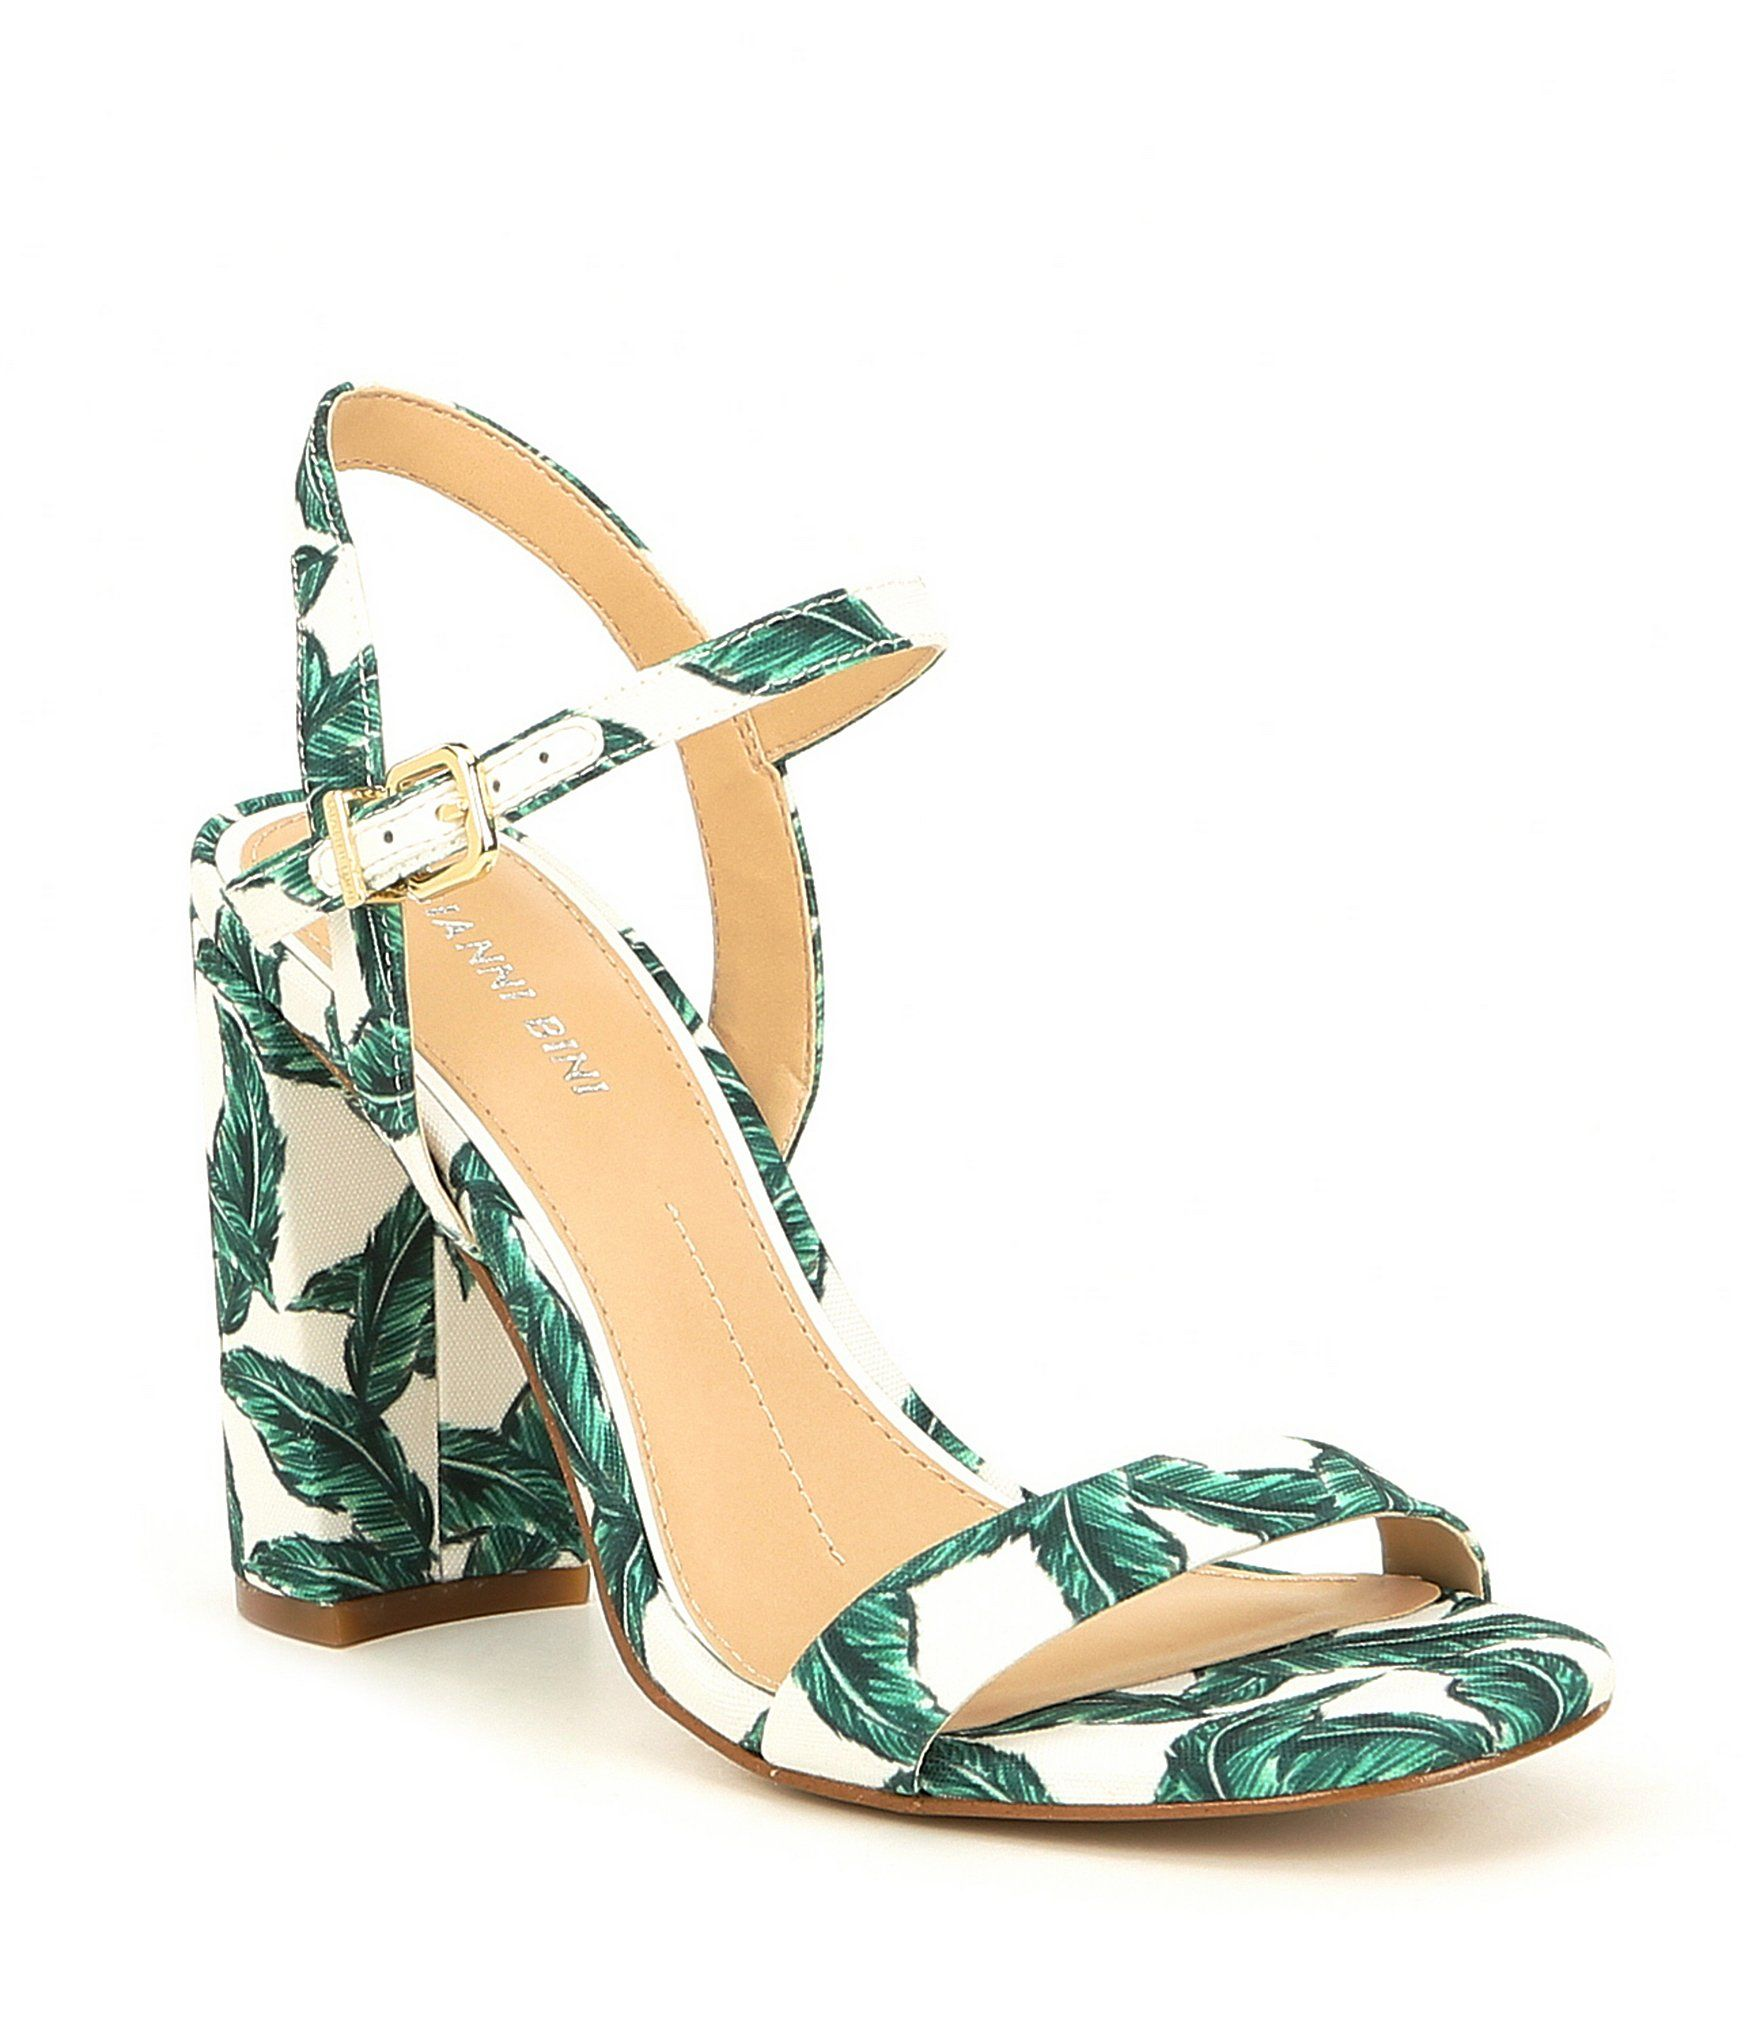 1aef6bc6a1db Shop for Gianni Bini McKaria Palm Leaf Print Block Heel Sandals at  Dillards.com. Visit Dillards.com to find clothing